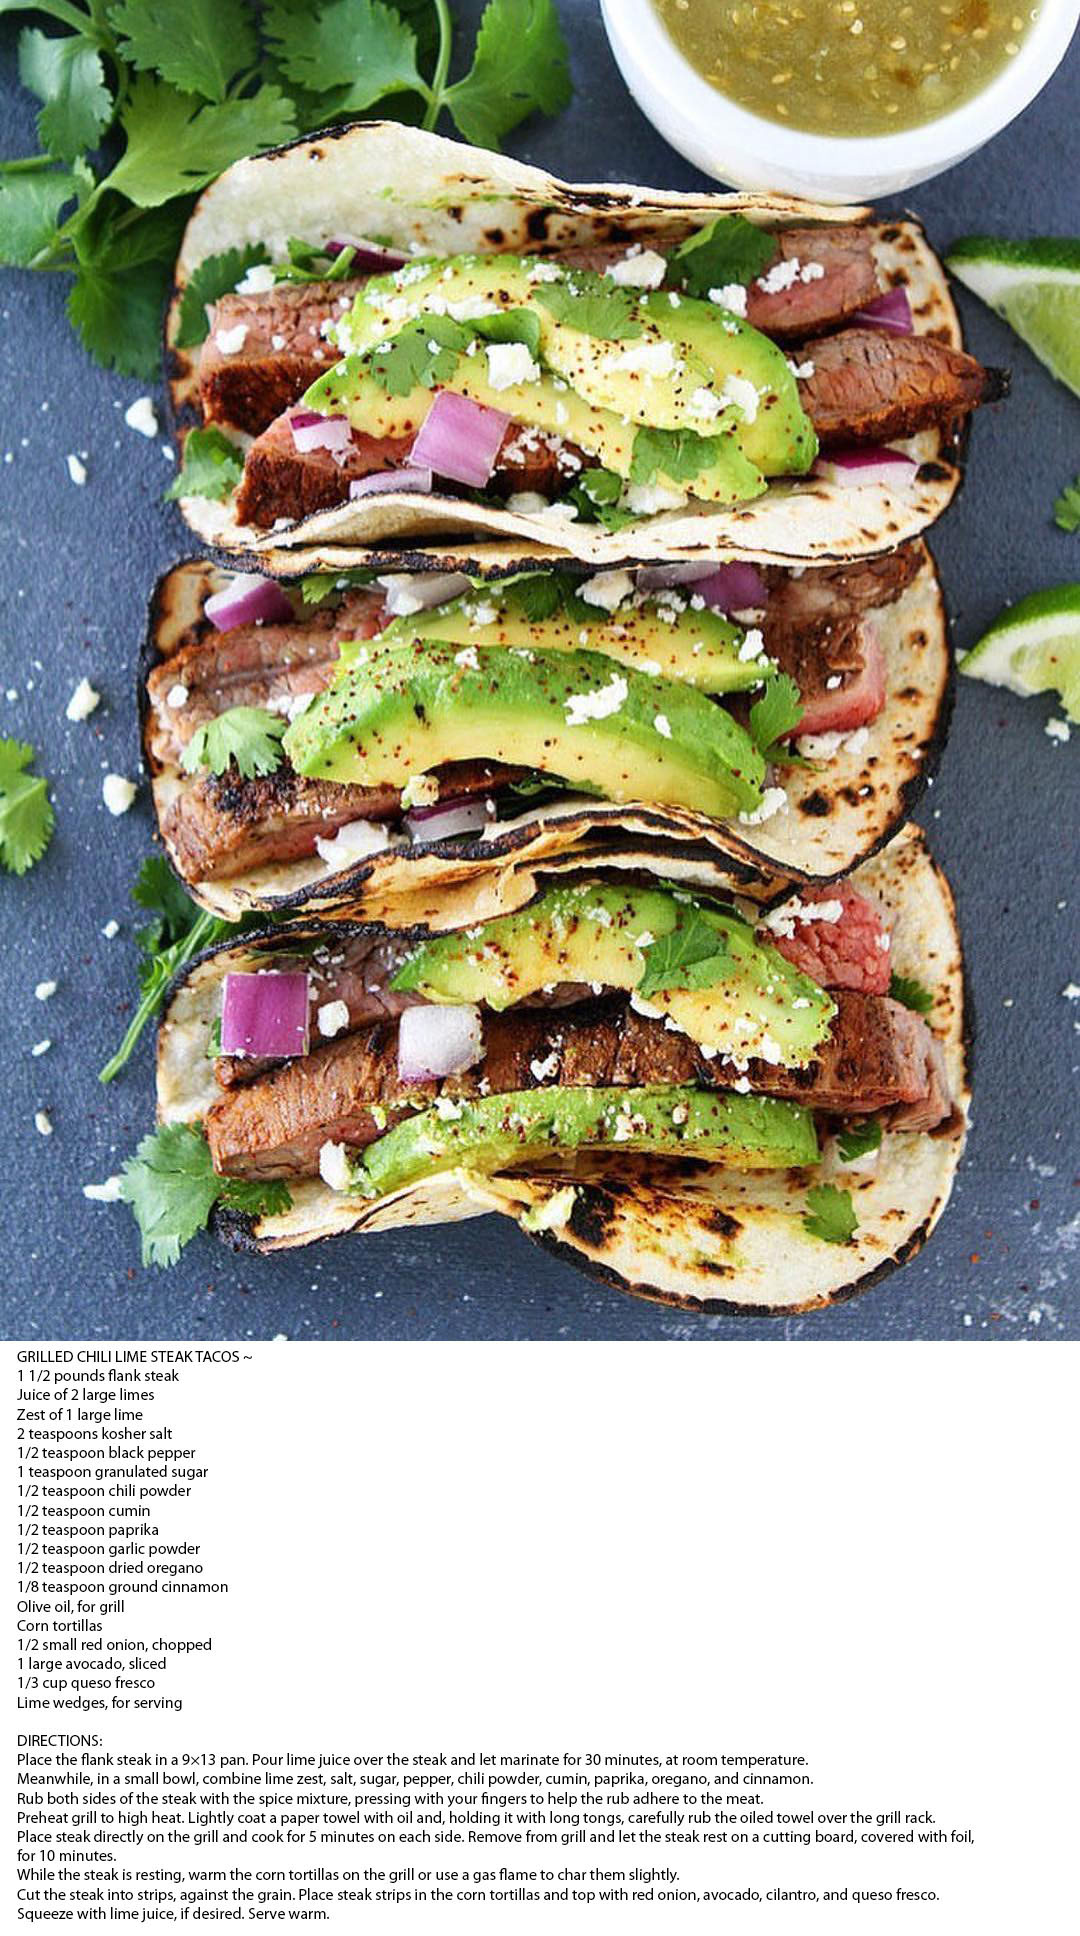 GRILLED CHILI LIME STEAK TACOS